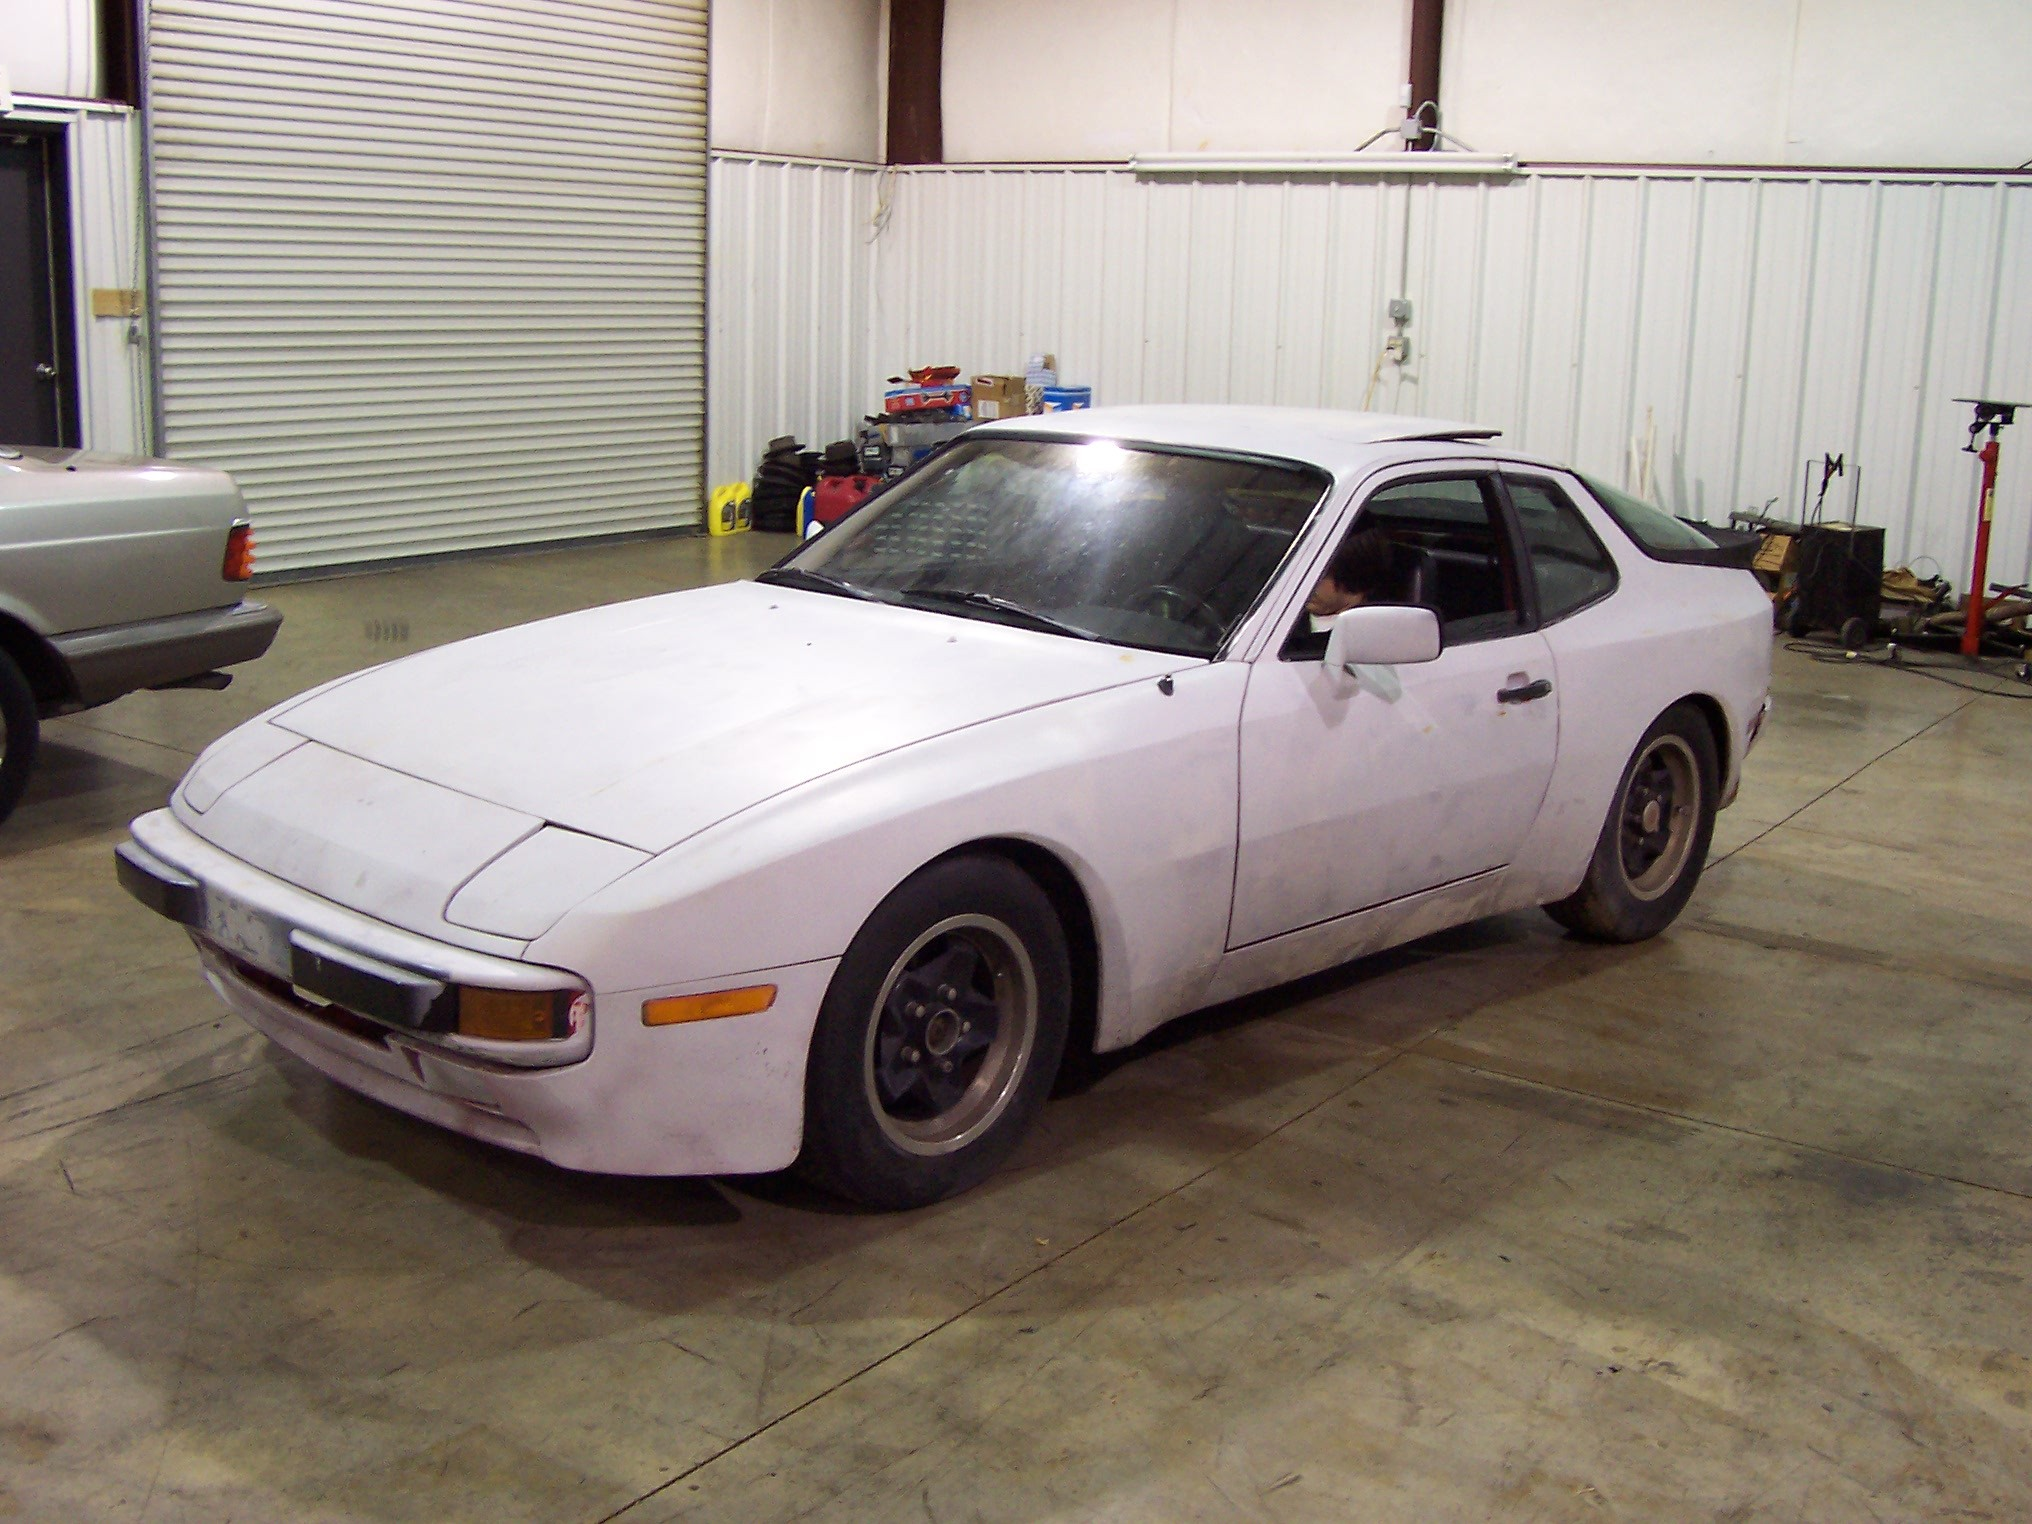 shwy1 39 s 1984 porsche 944 in jackson tn. Black Bedroom Furniture Sets. Home Design Ideas